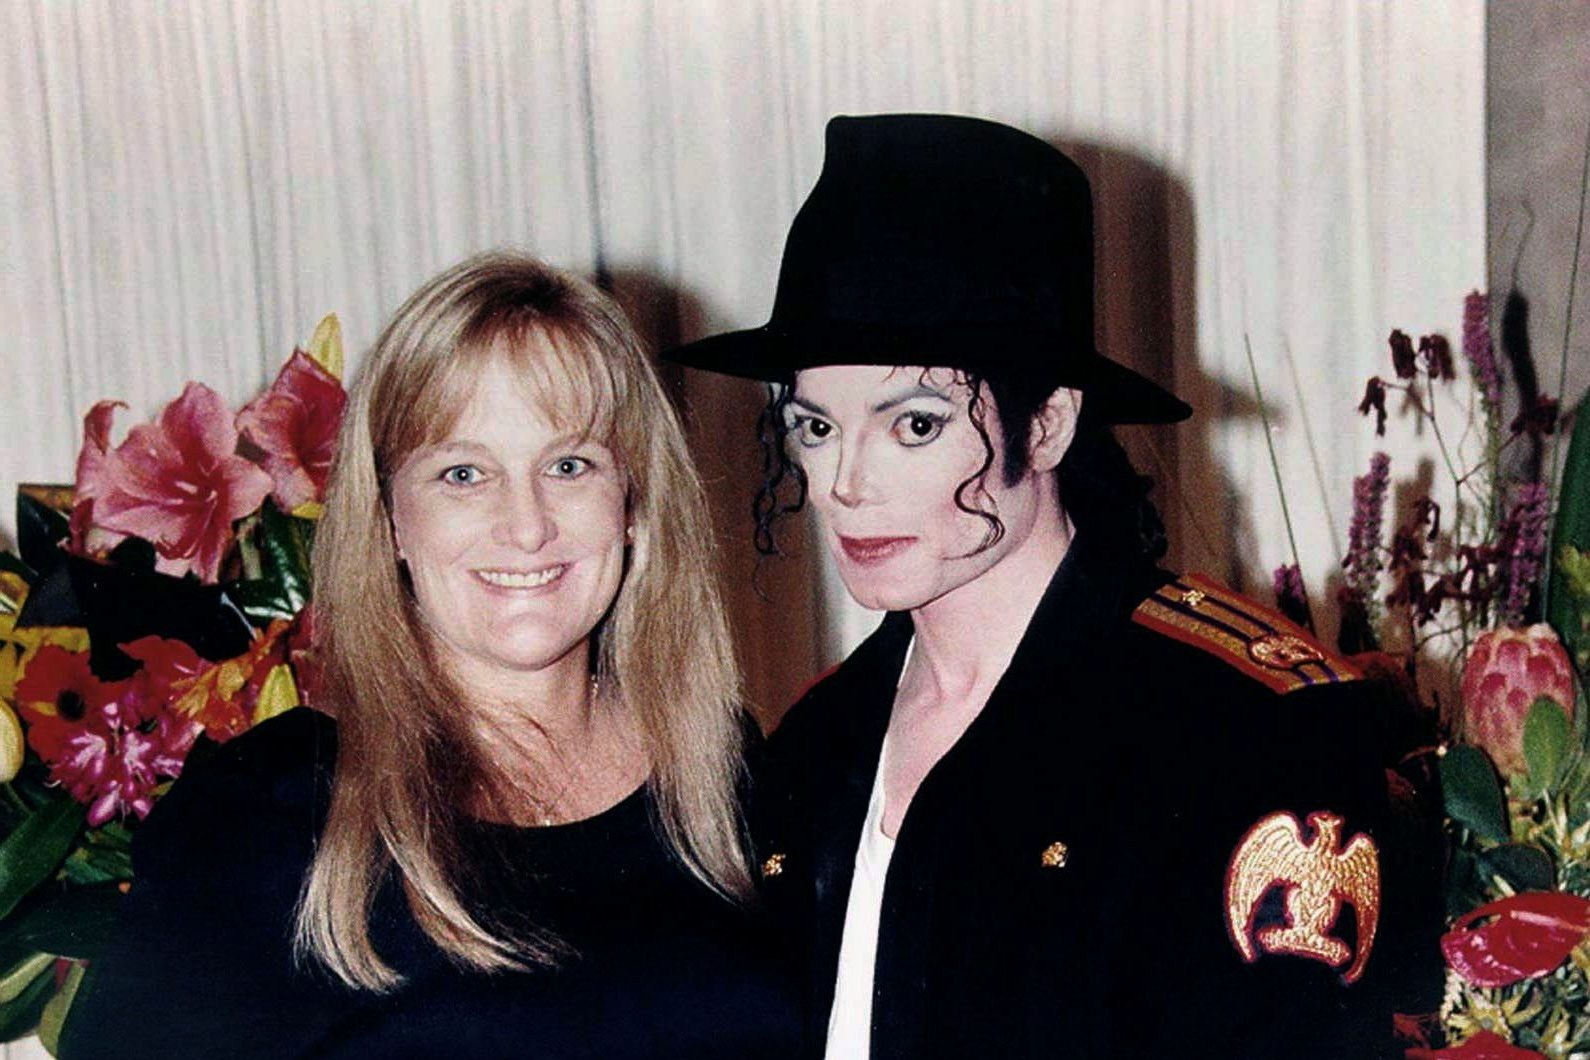 Michael Jackson 'snatched' newborn Paris with placenta still attached from Debbie Rowe in hospital and whisked her back to Neverland Ranch